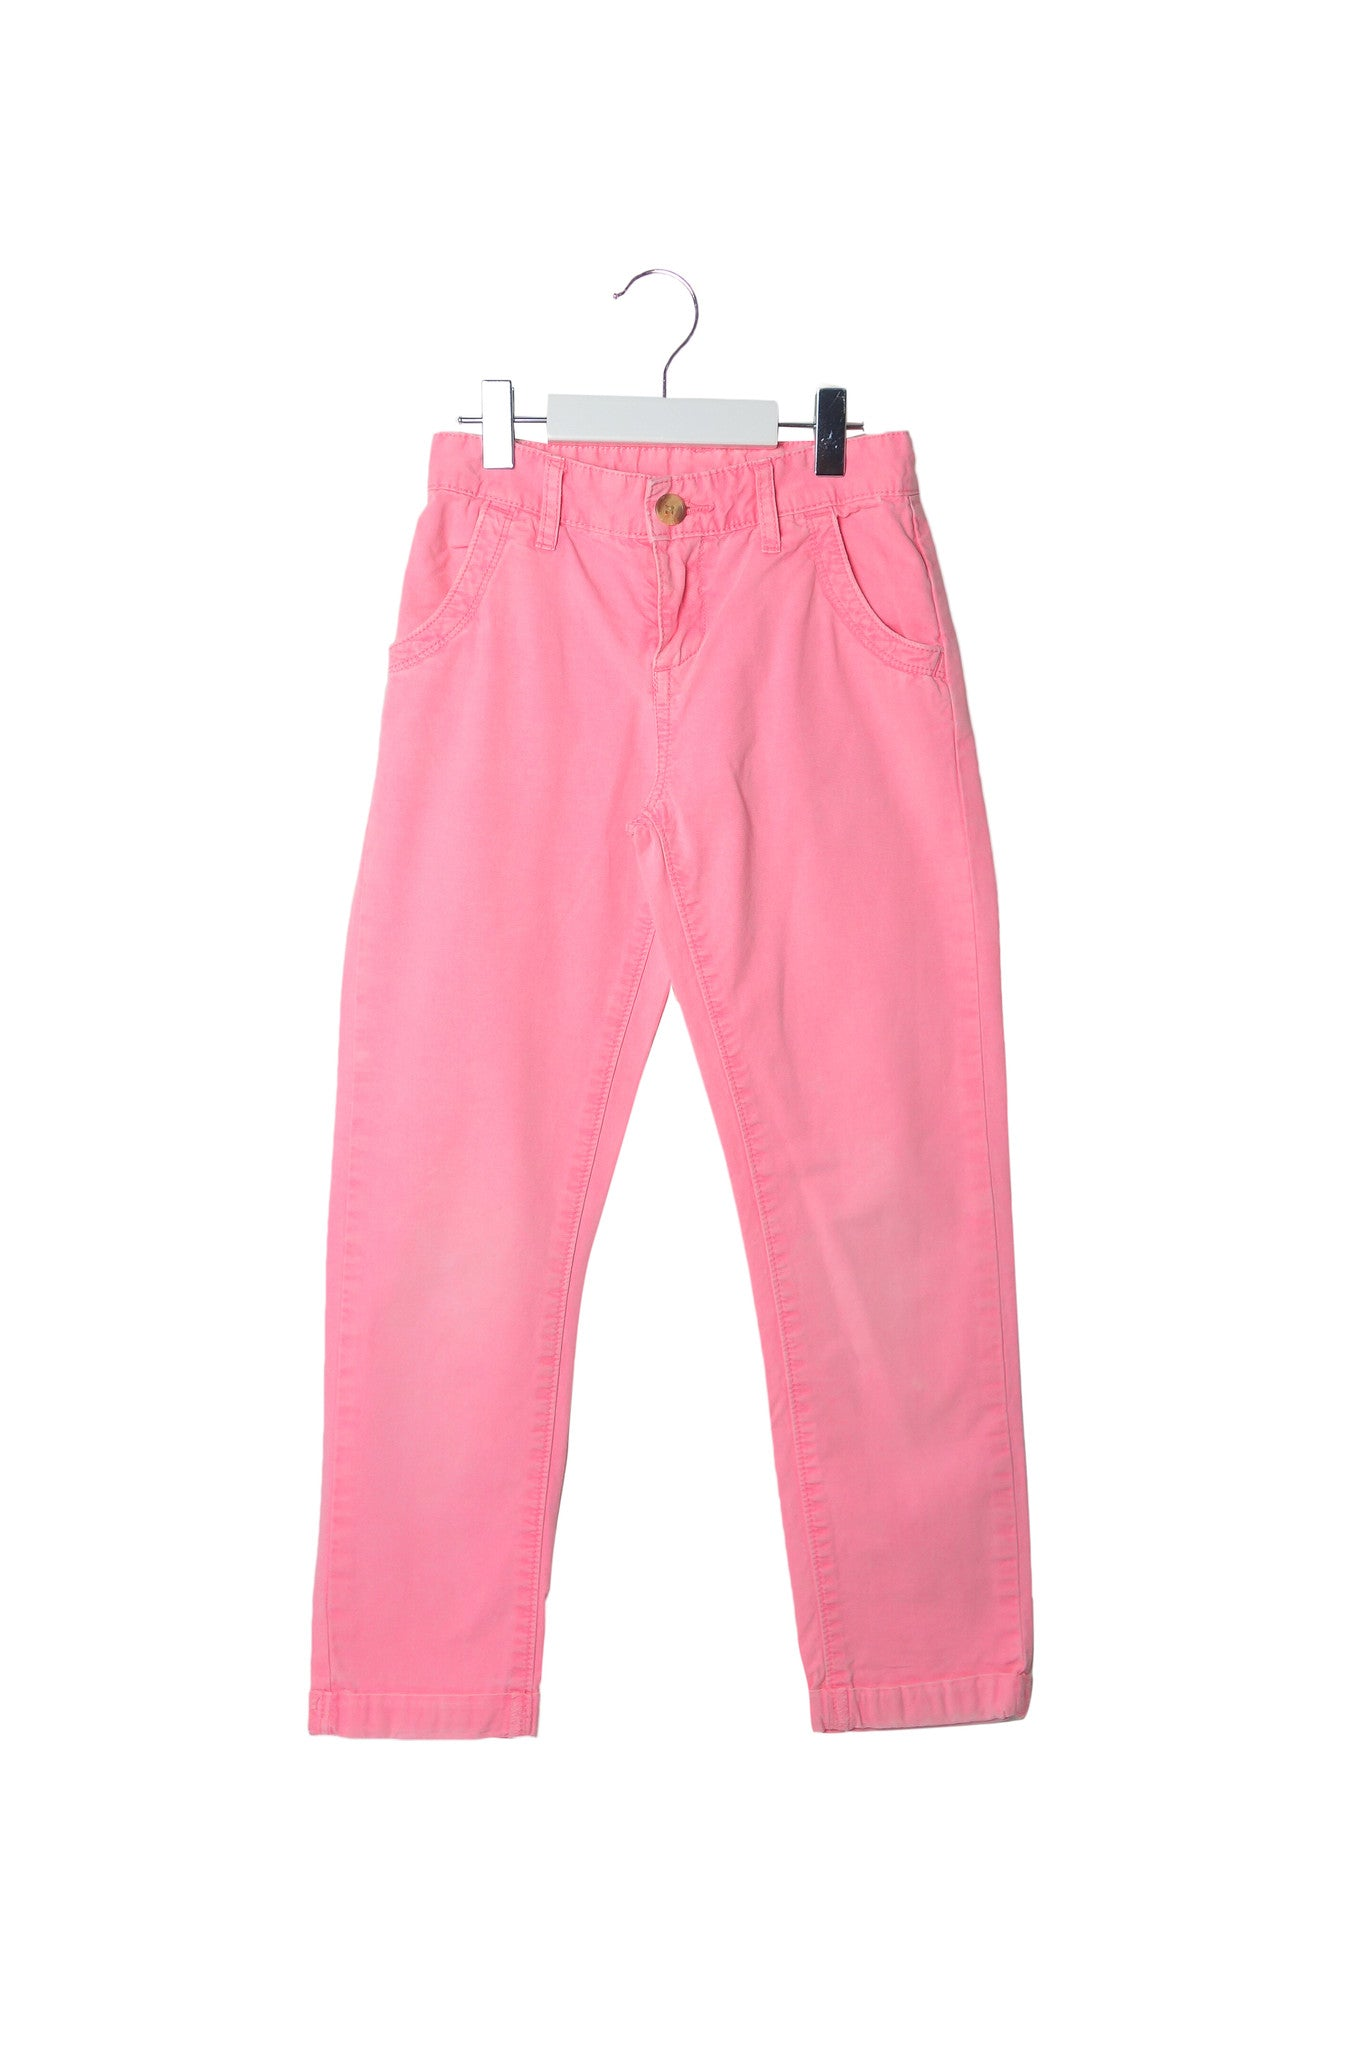 10002564 Seed Kids~Pants 7-8 at Retykle